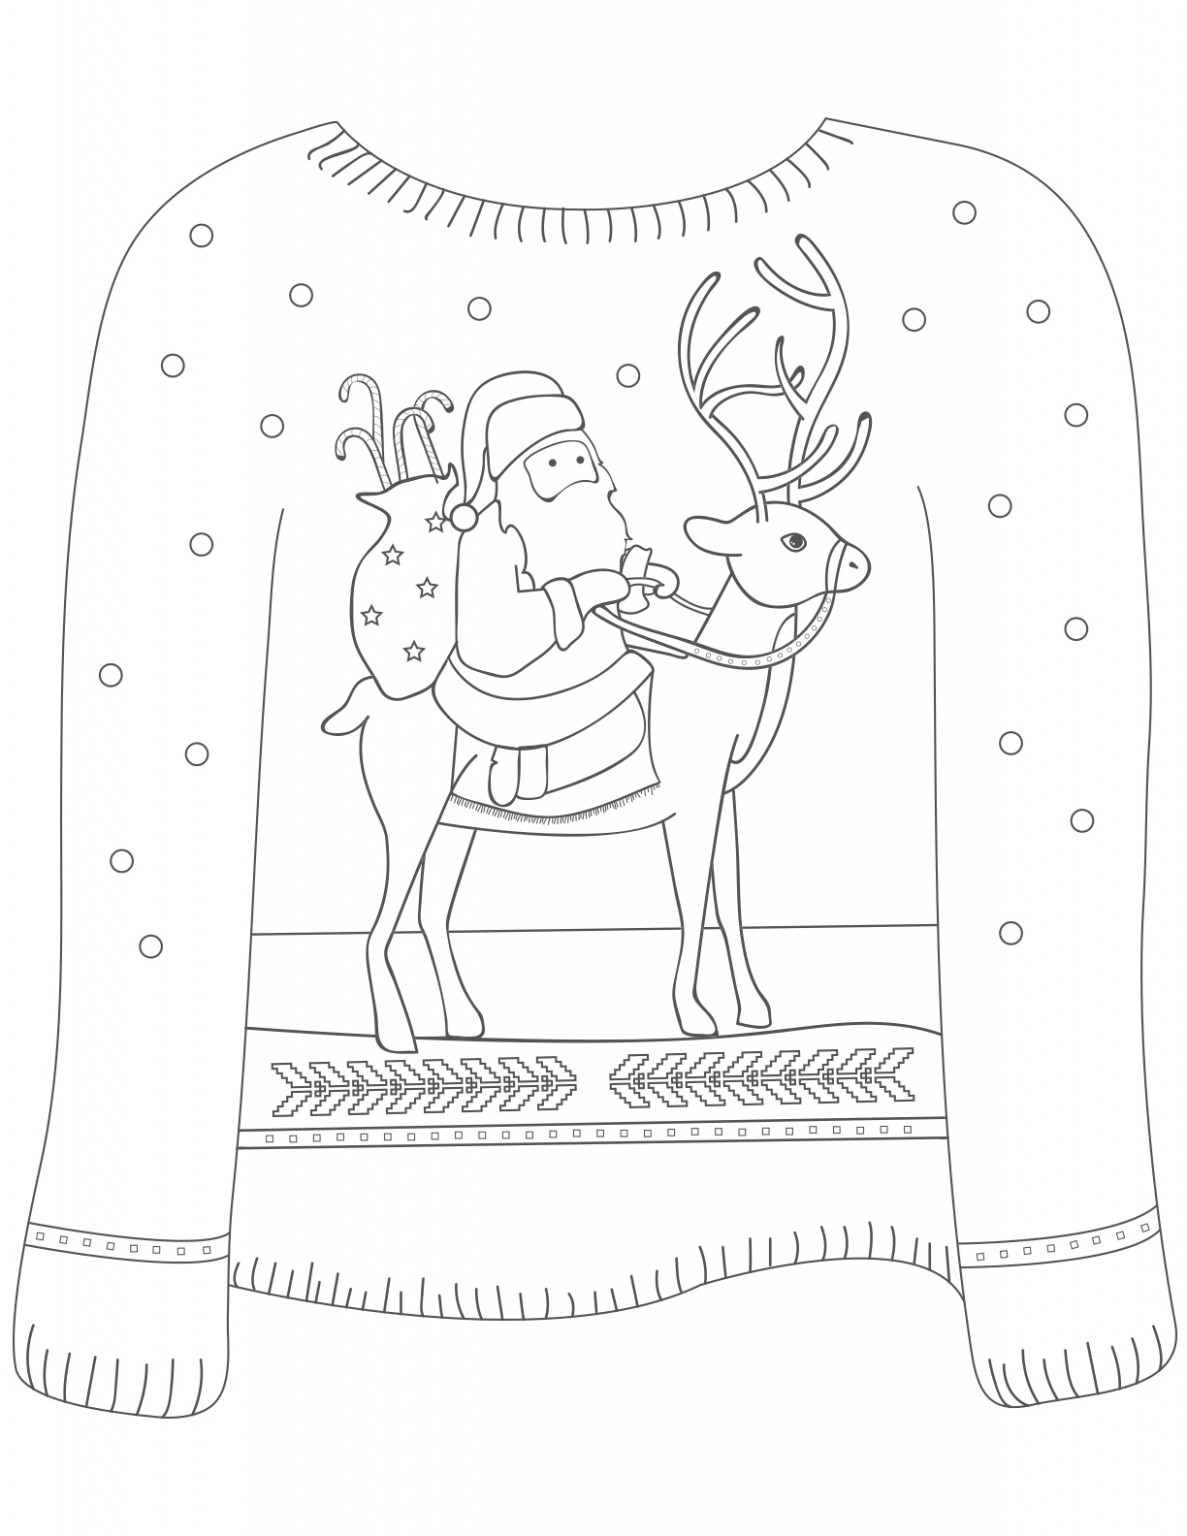 20 Ugly Christmas Sweater Colouring Pages – Mum In The Madhouse – Ugly Christmas Sweater Coloring Pages